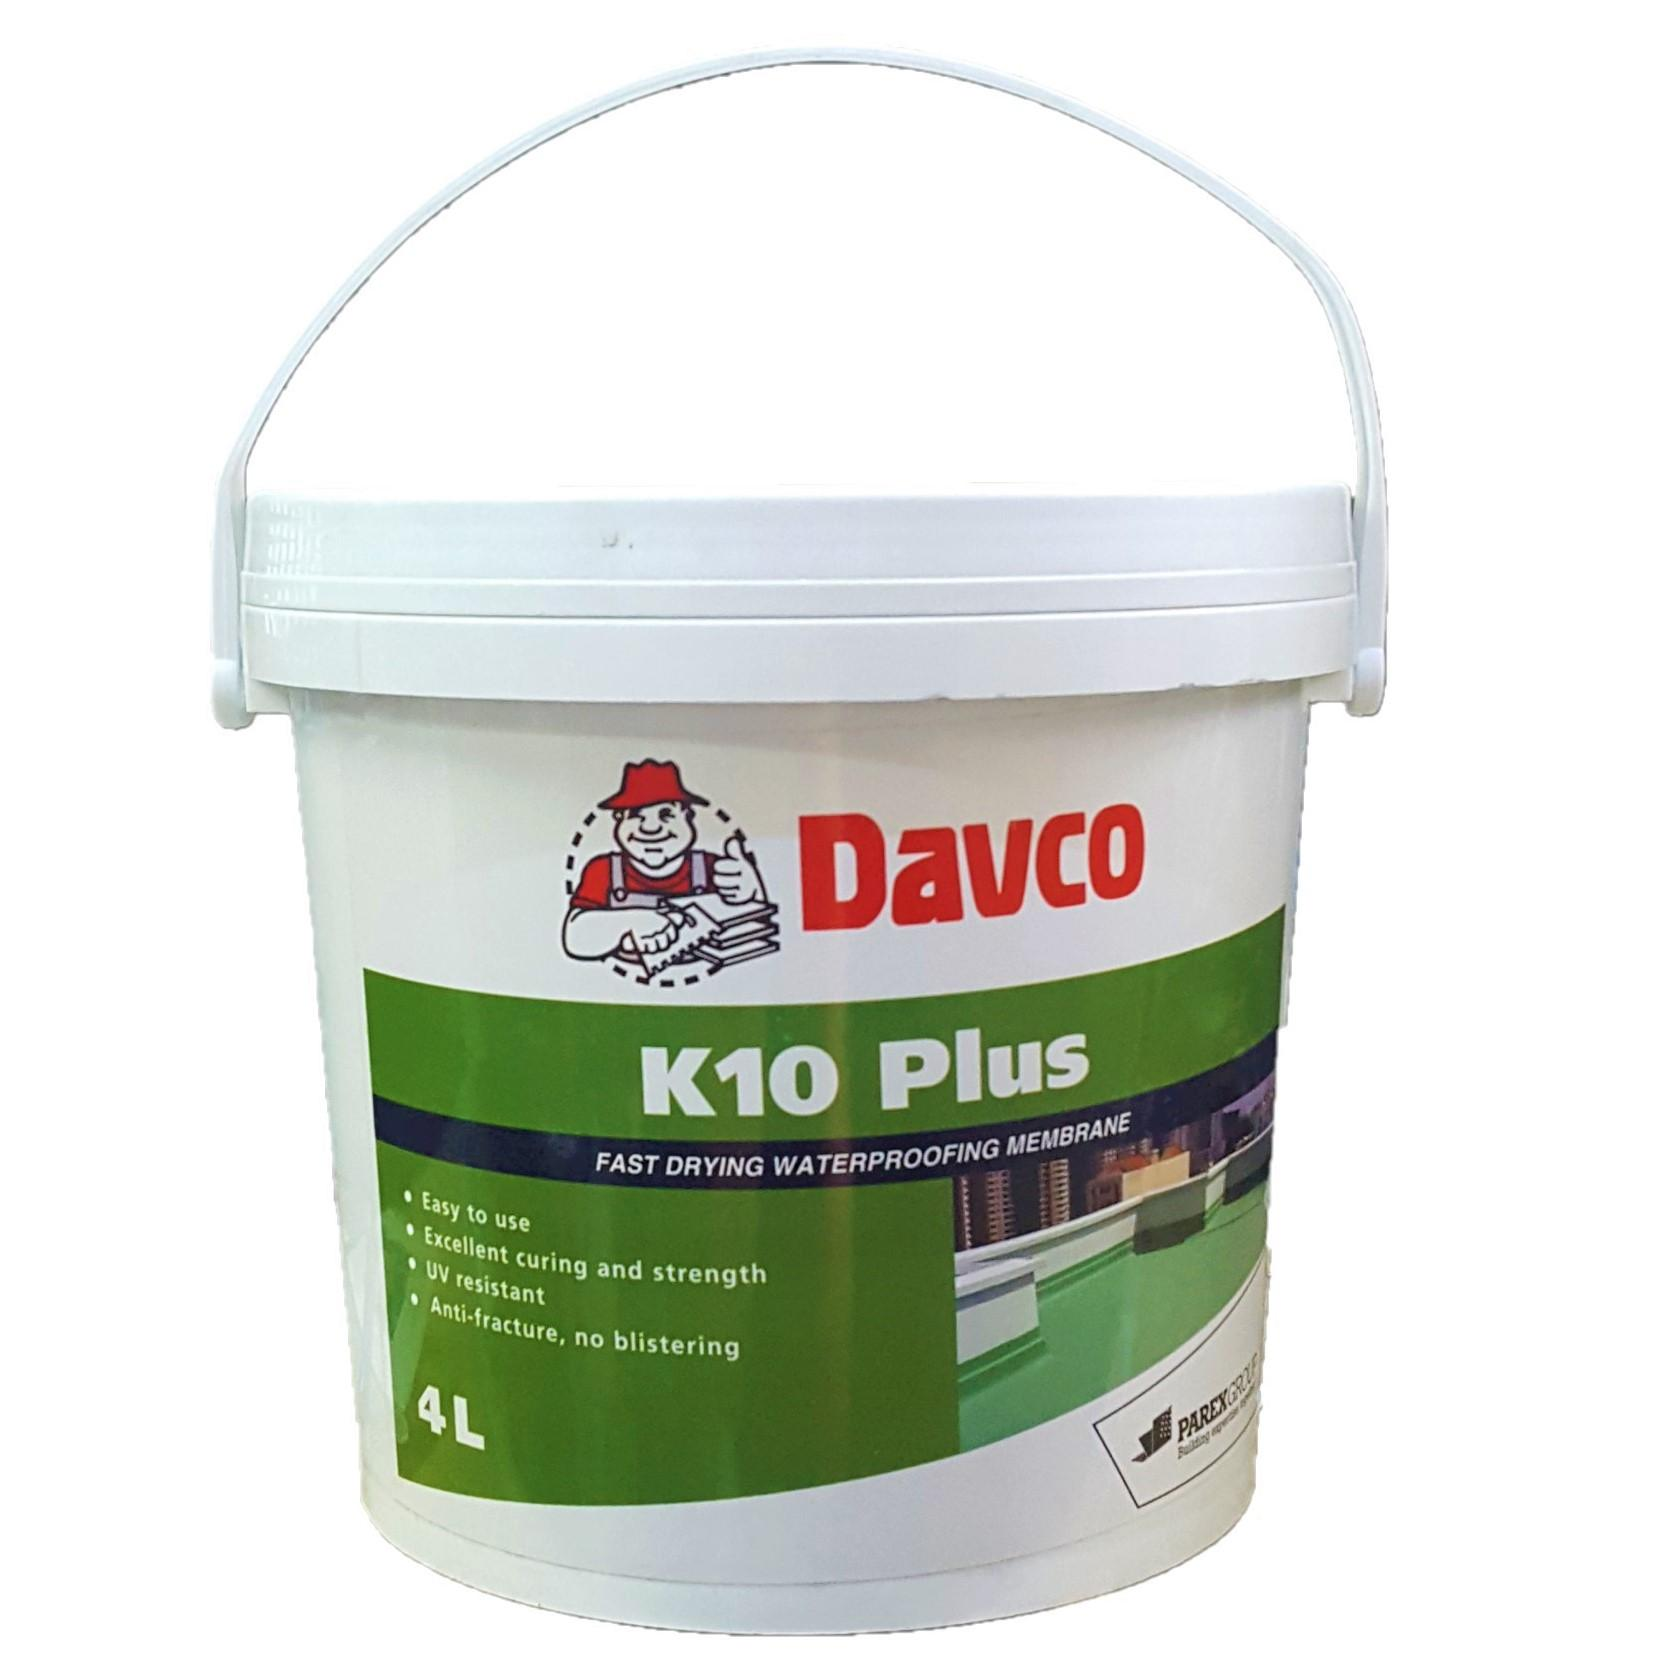 DAVCO K10 Plus Fast Drying Waterproofing Membrane for Roof Deck and